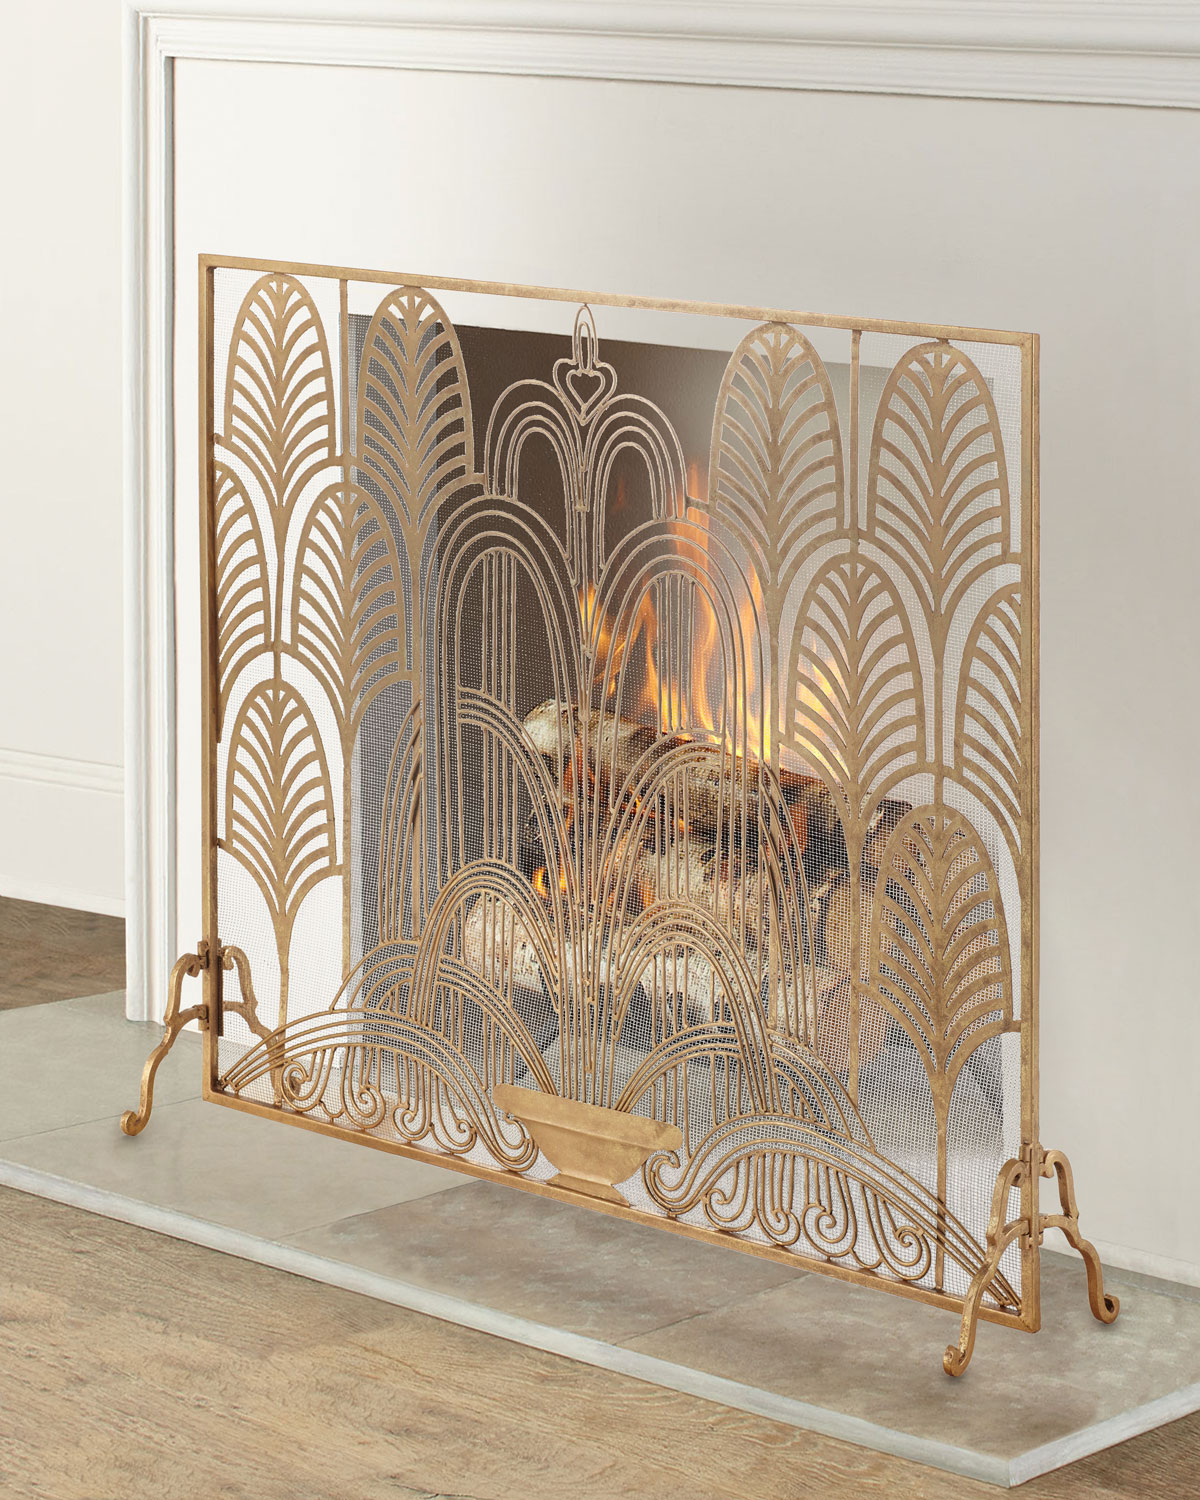 New Neiman Marcus Italian Gold Branch Fireplace Screen HORCHOW Also in White